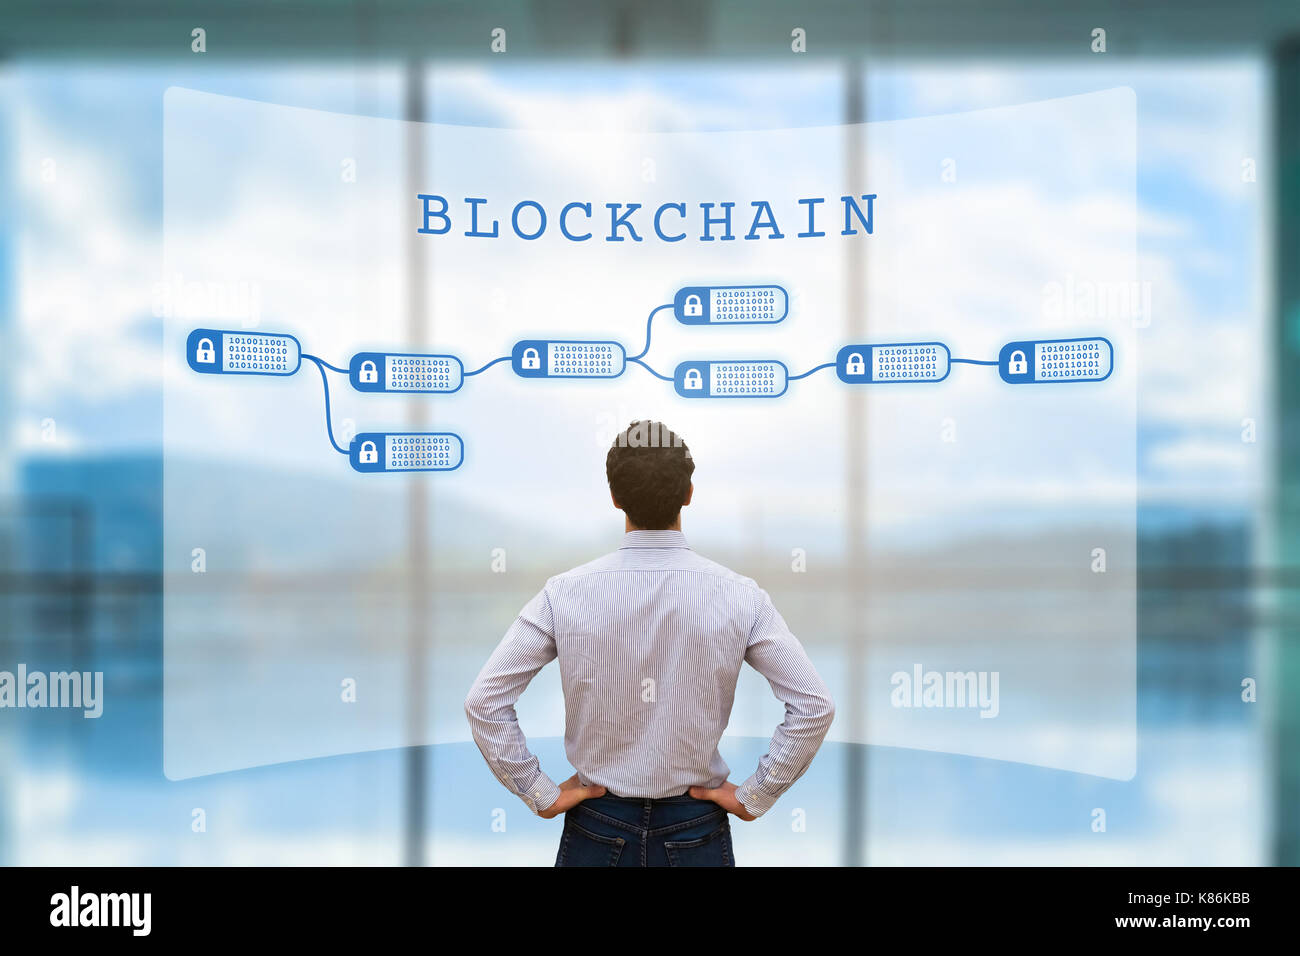 Person looking at blockchain concept on screen as a secured decentralized ledger for cryptocurrency financial technology and business transaction data - Stock Image